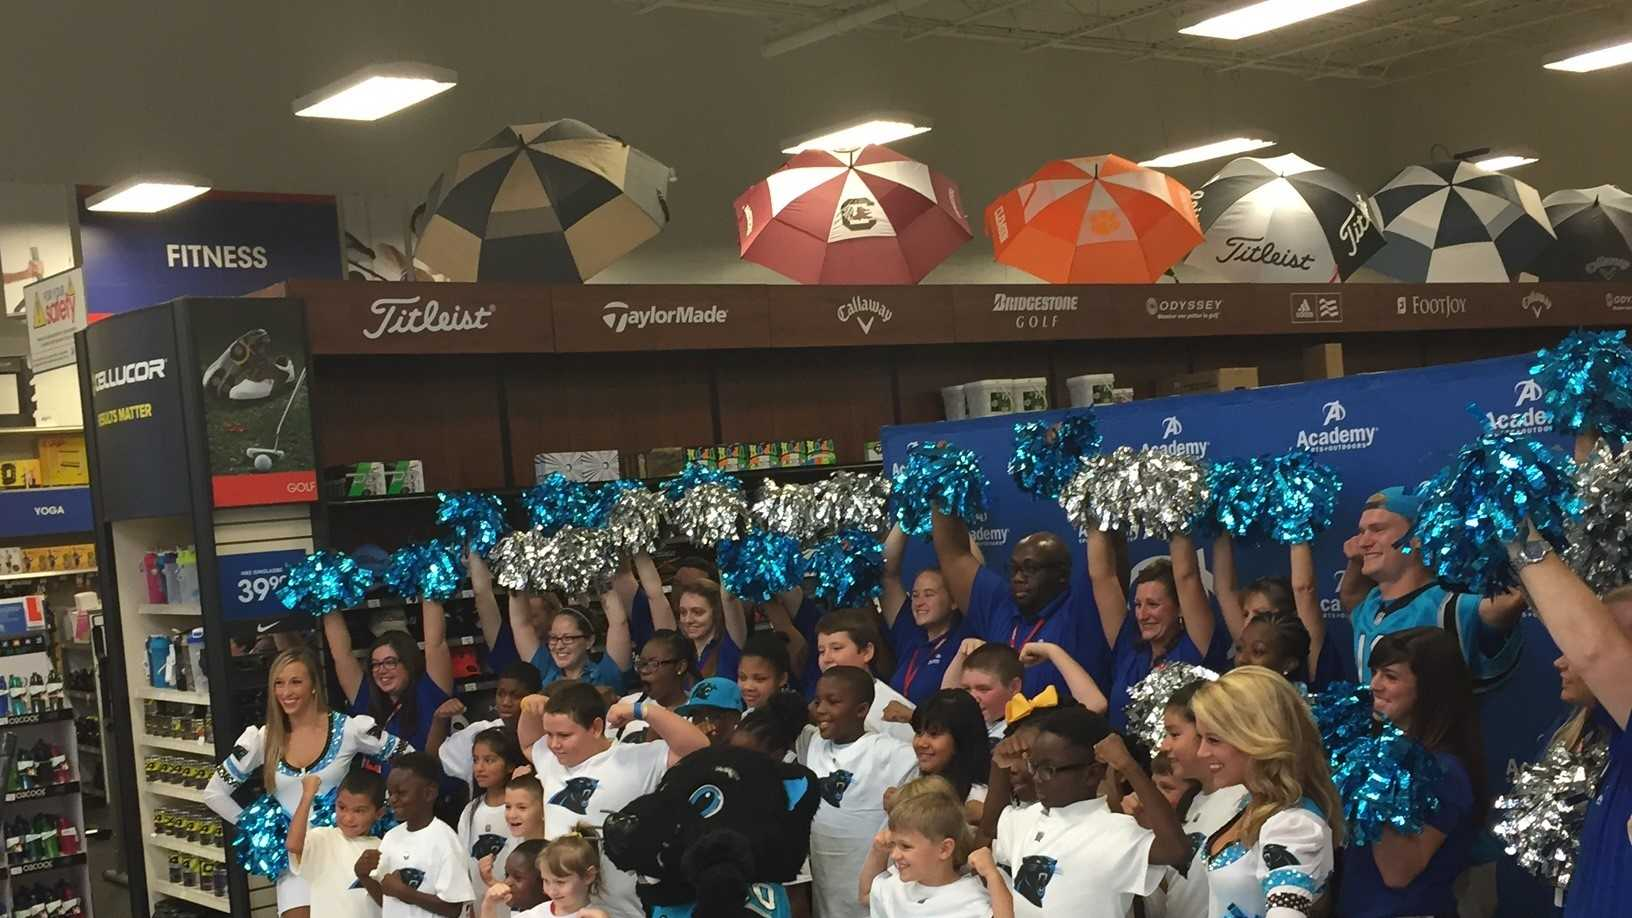 The Carolina Panthers and Academy Sports and Outdoors teamed up to take 28 students on a back-to-school shopping spree in Spartanburg.